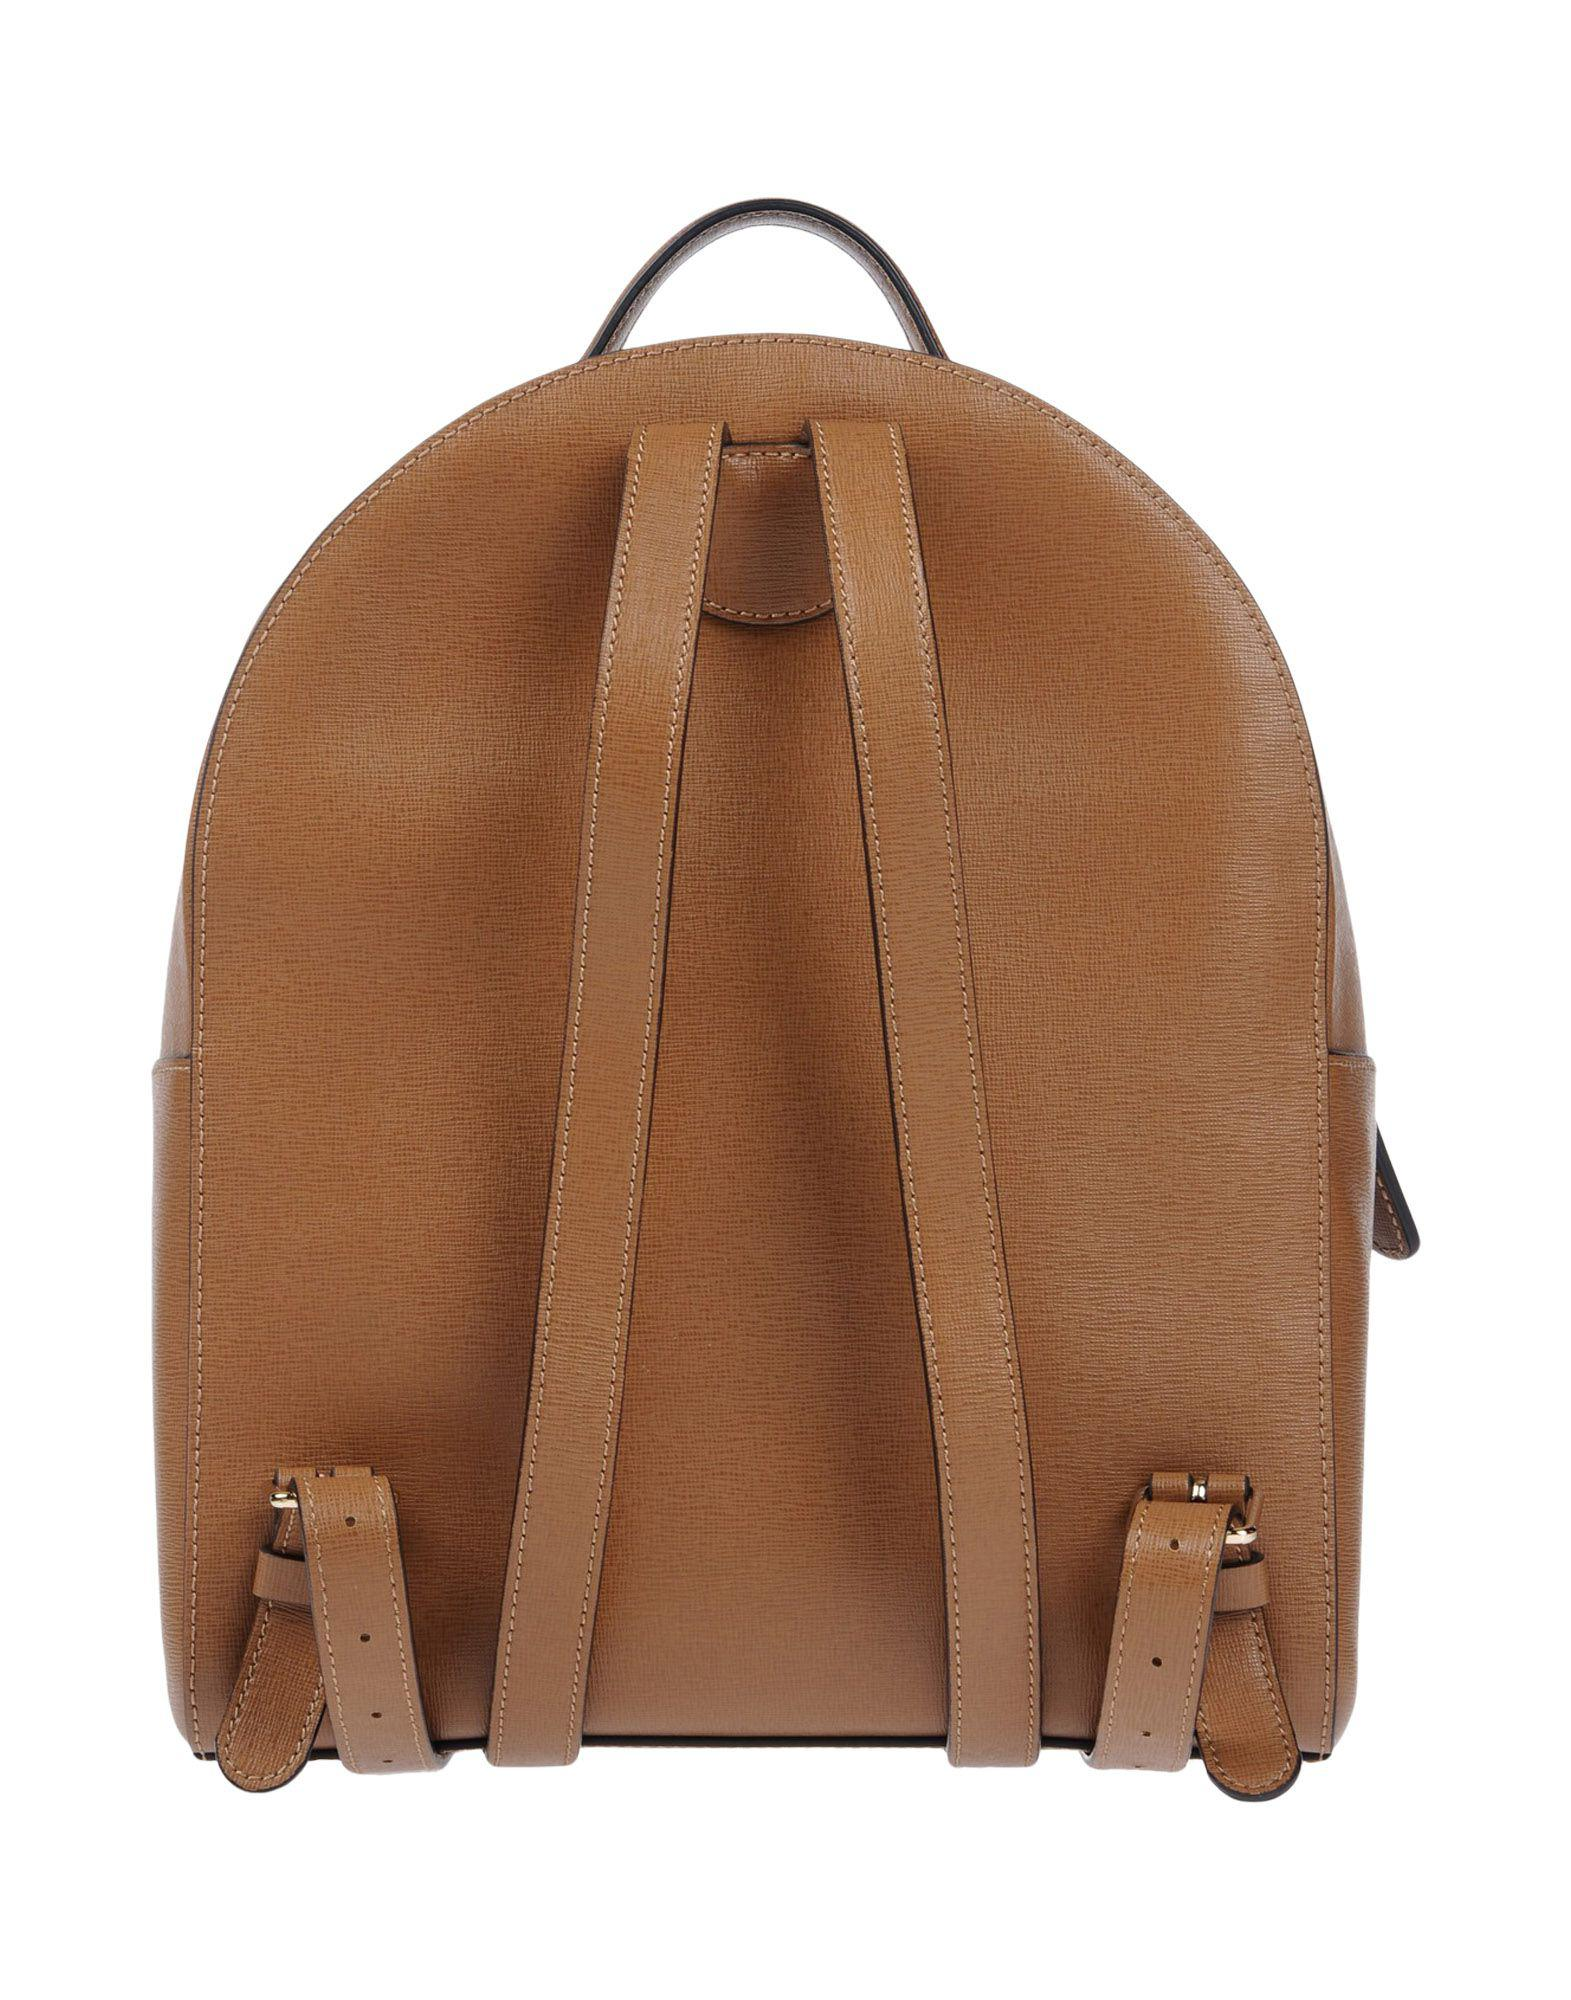 Coccinelle Leather Backpacks & Fanny Packs in Brown